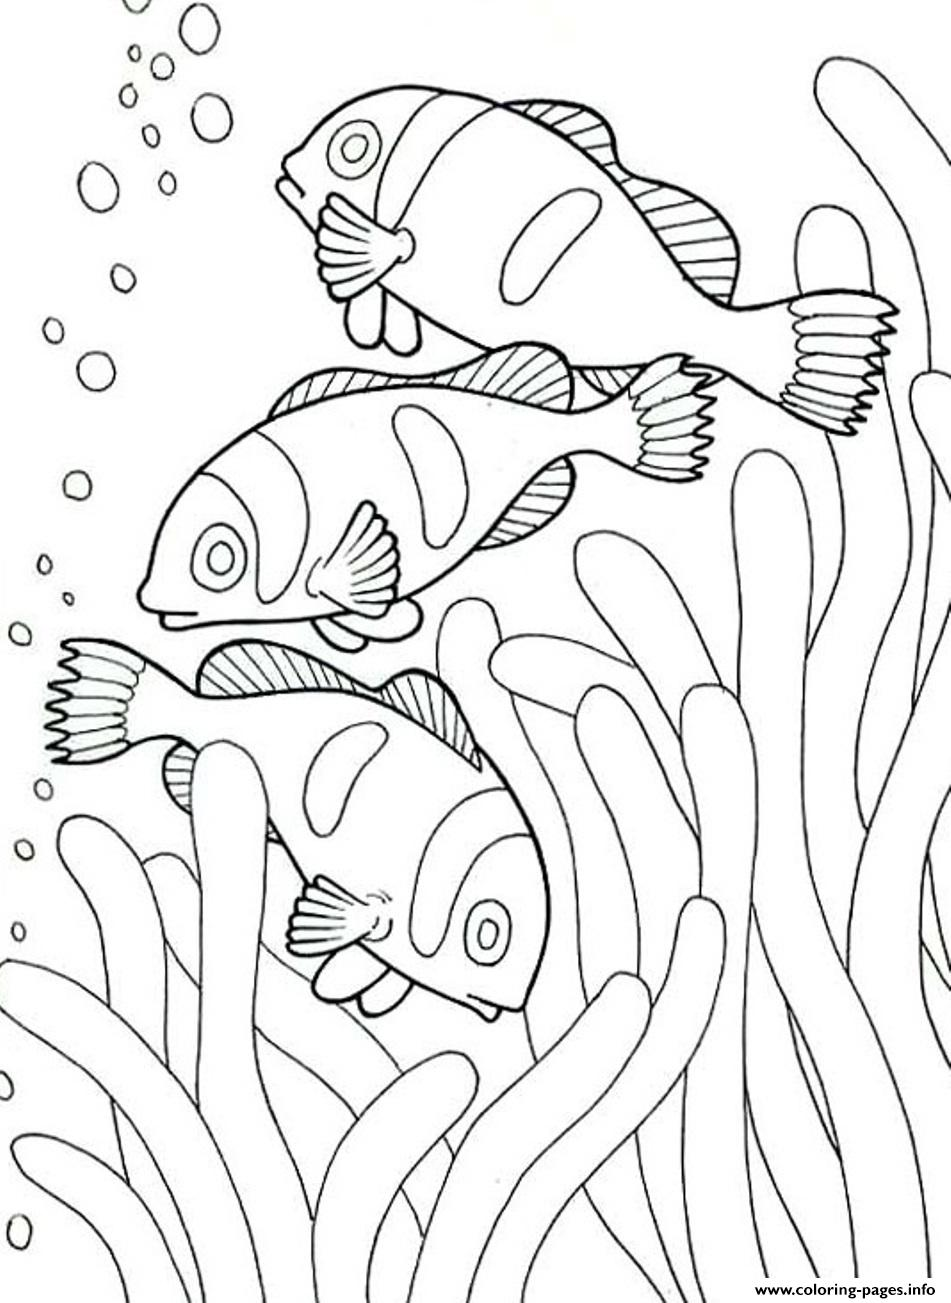 sea creature drawing at free for personal use sea creature drawing of your choice. Black Bedroom Furniture Sets. Home Design Ideas